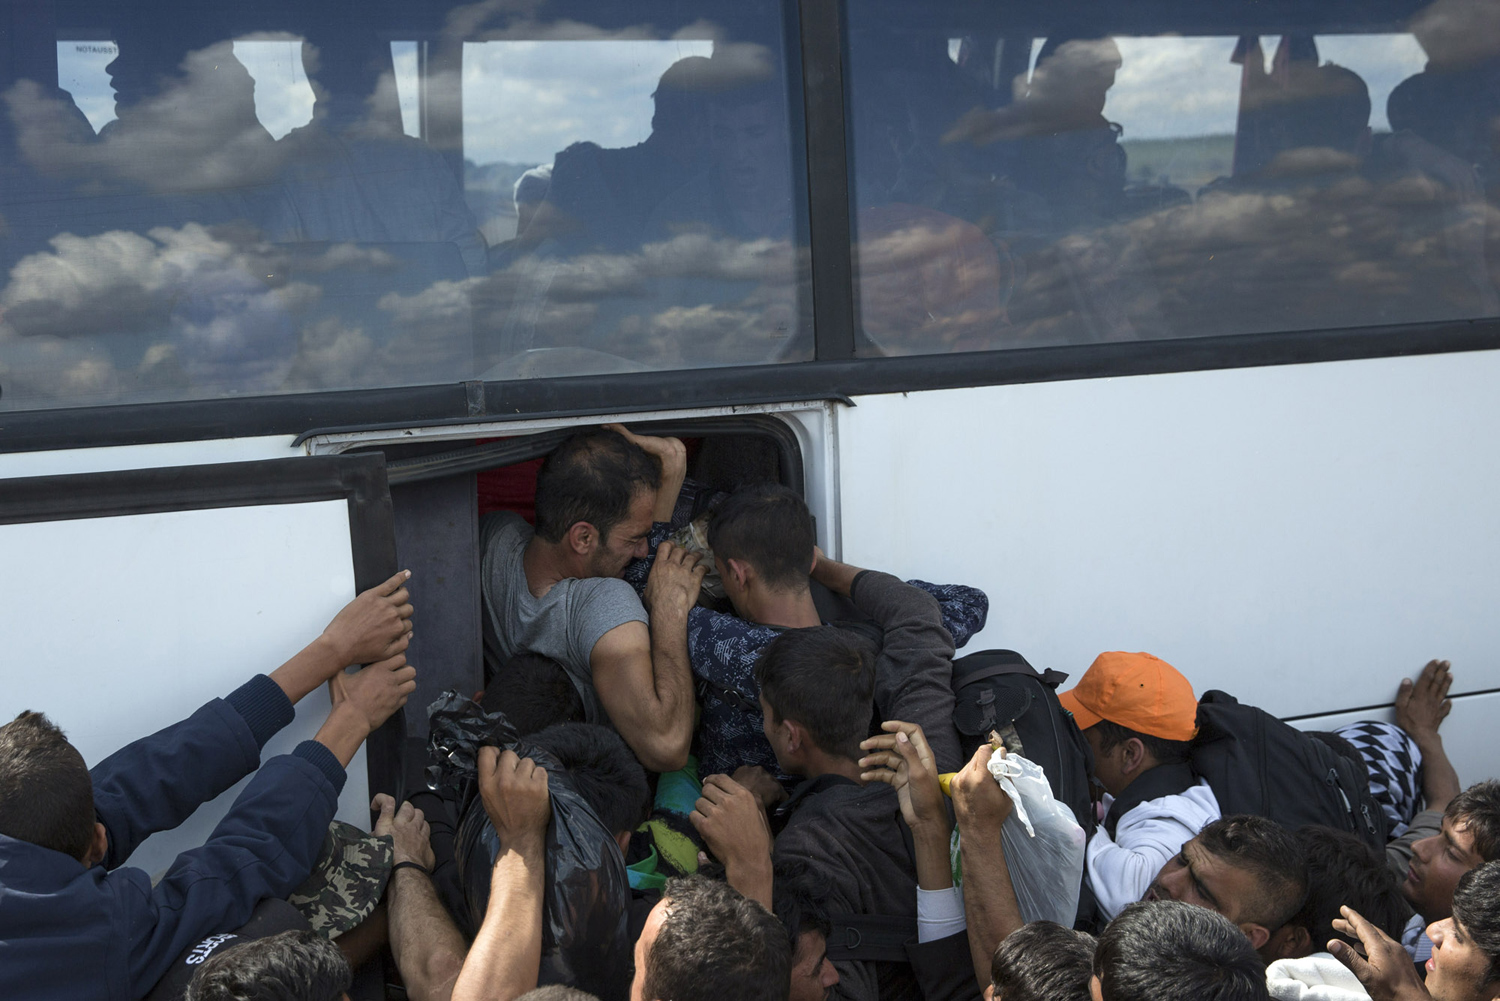 The path of migrants in Europe 39